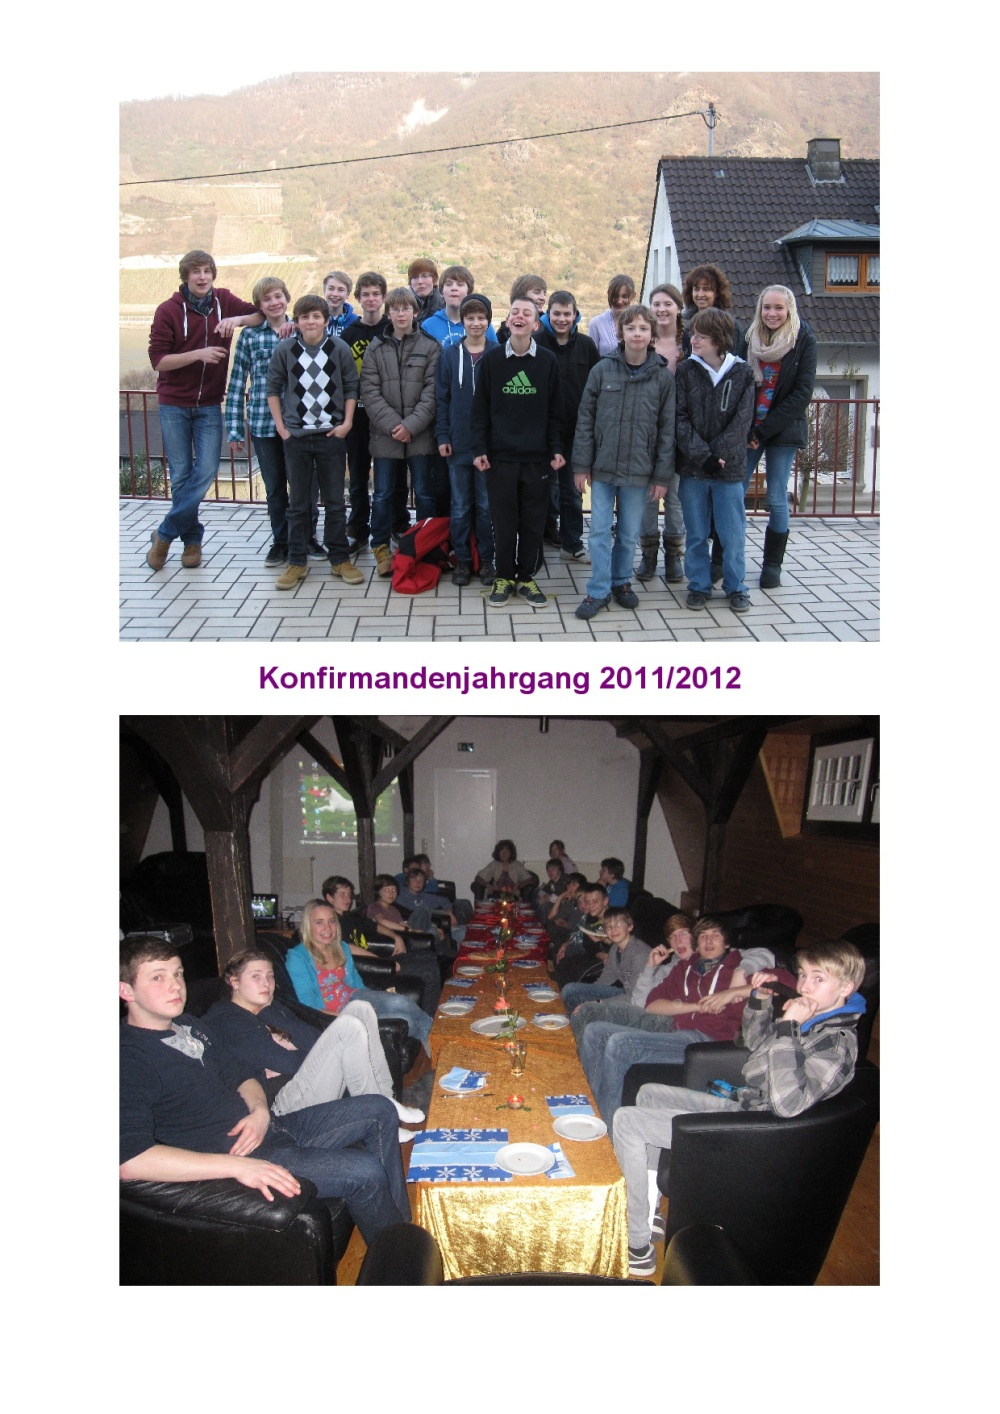 03-Konfirmandenjahrgang-2011-12 ,Jan.12-001